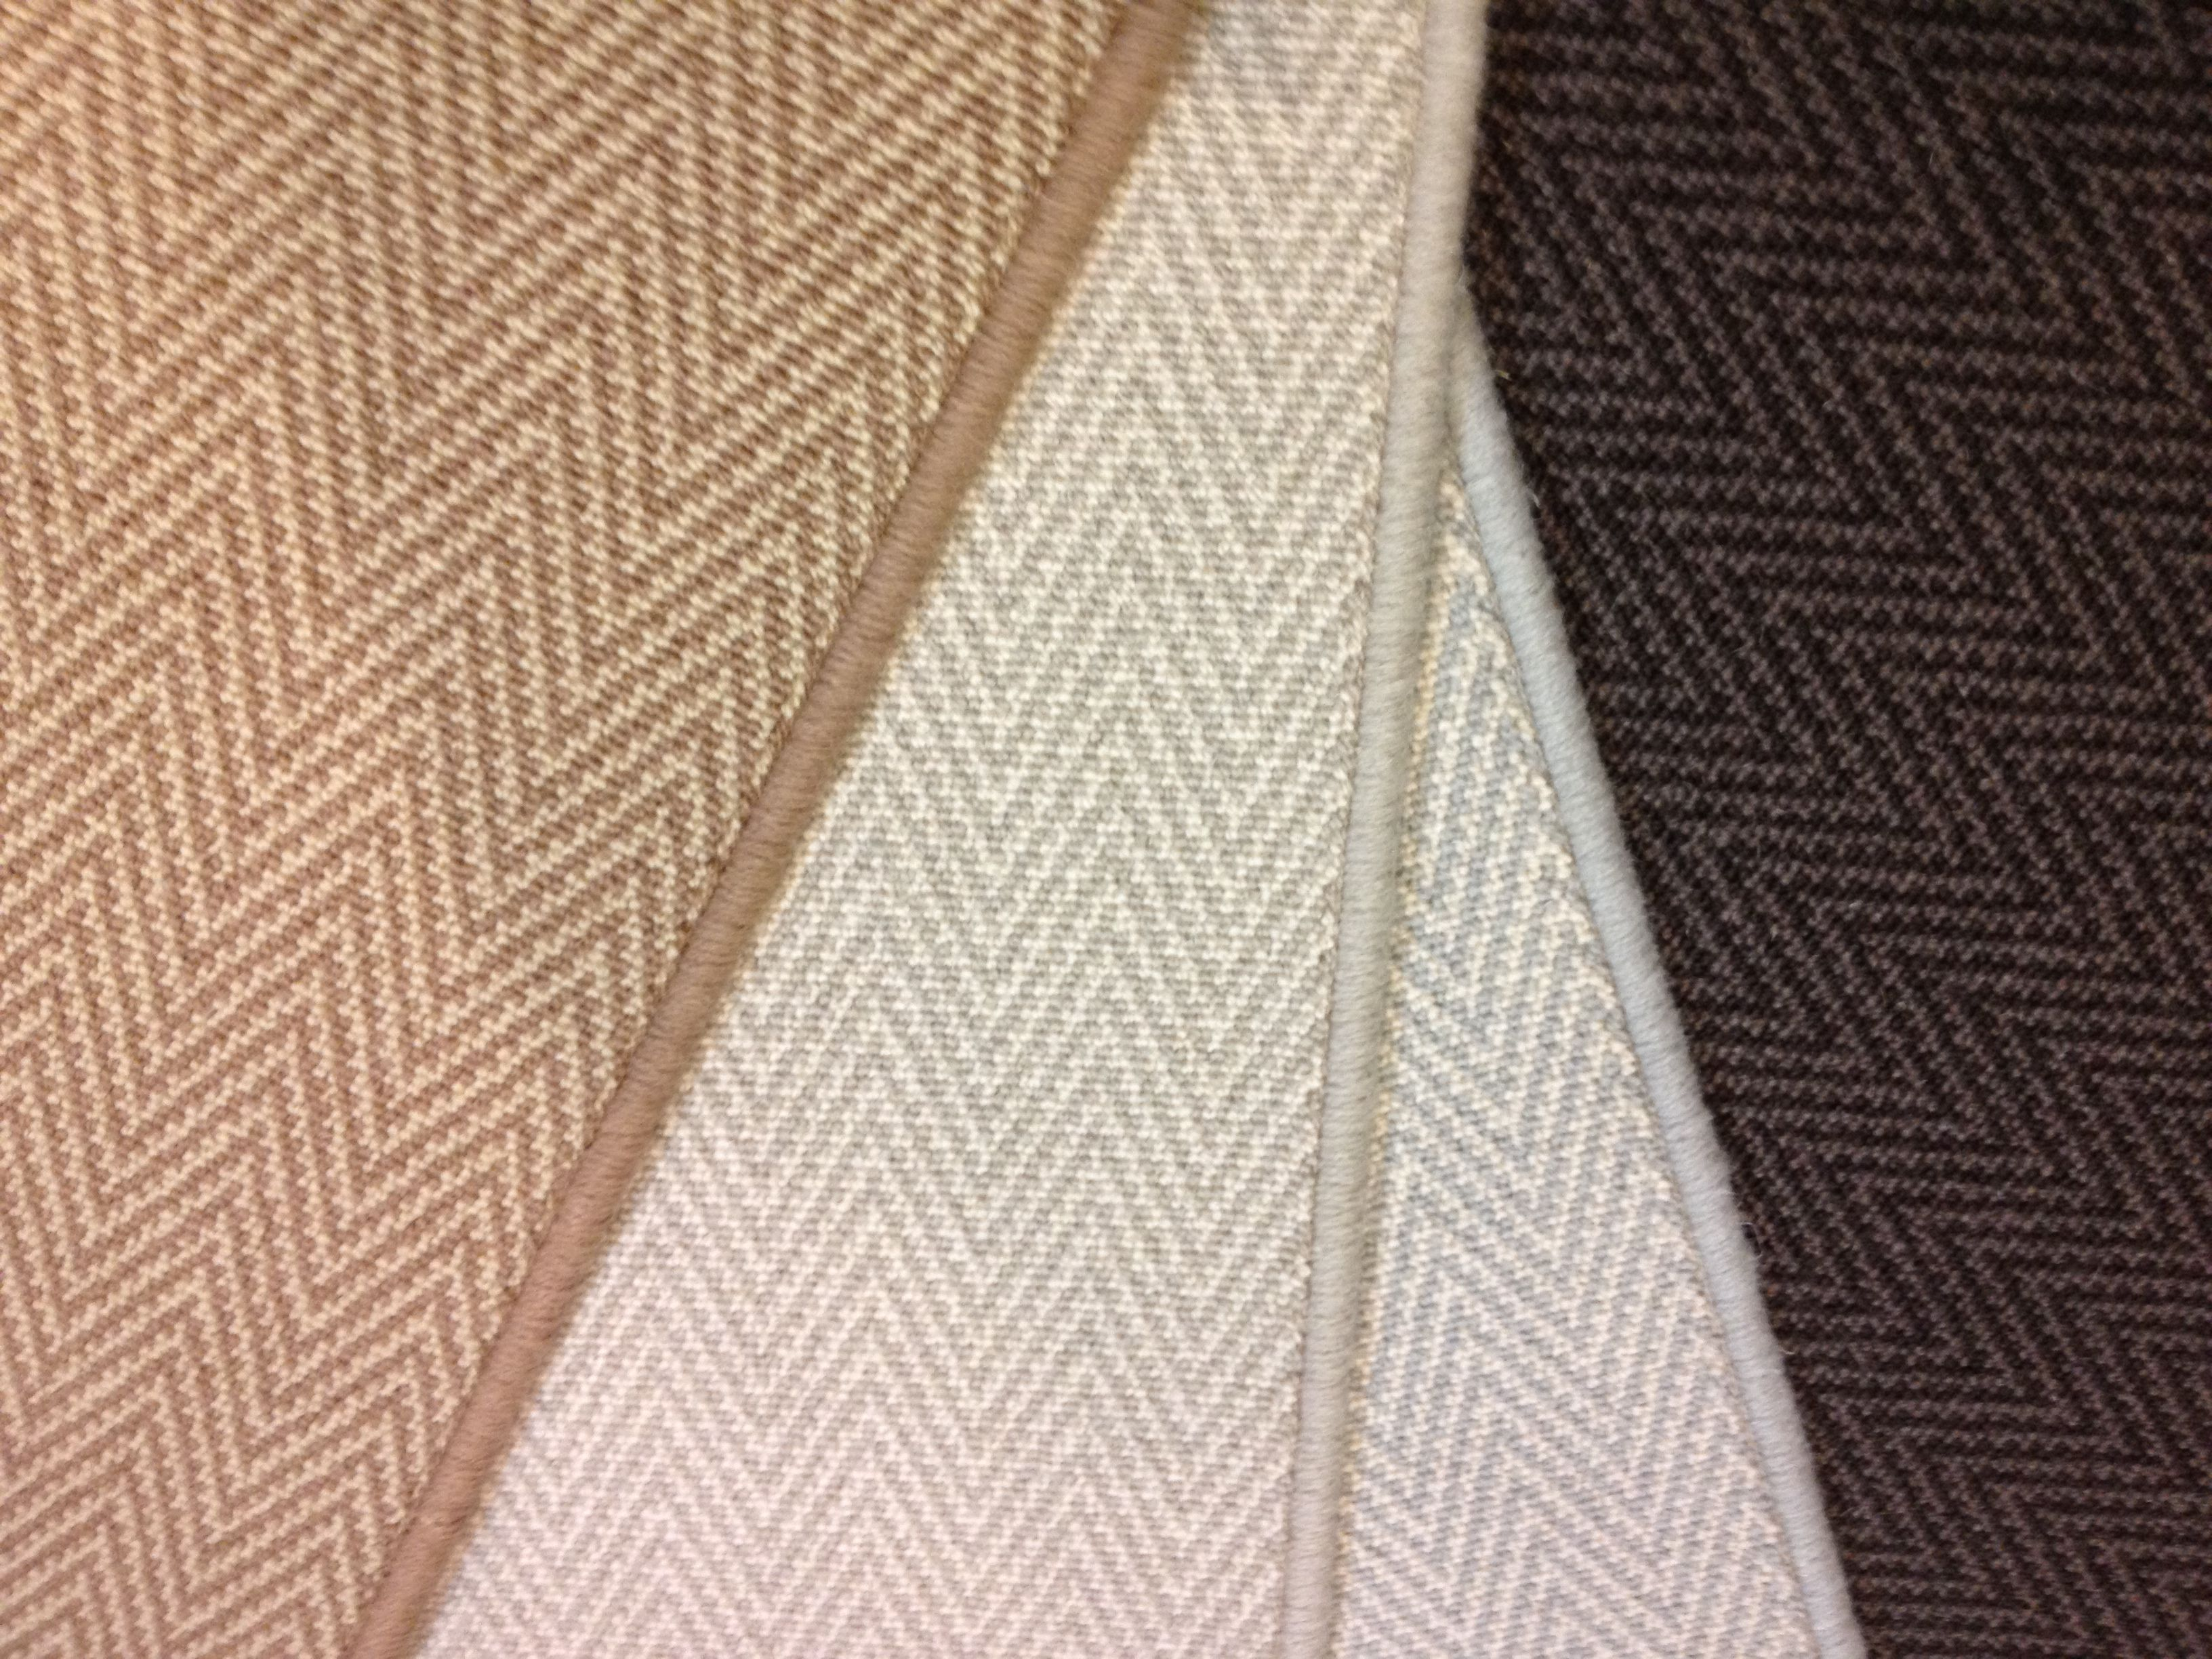 Chalfont 100 Wool And Is Made In England Purchase At